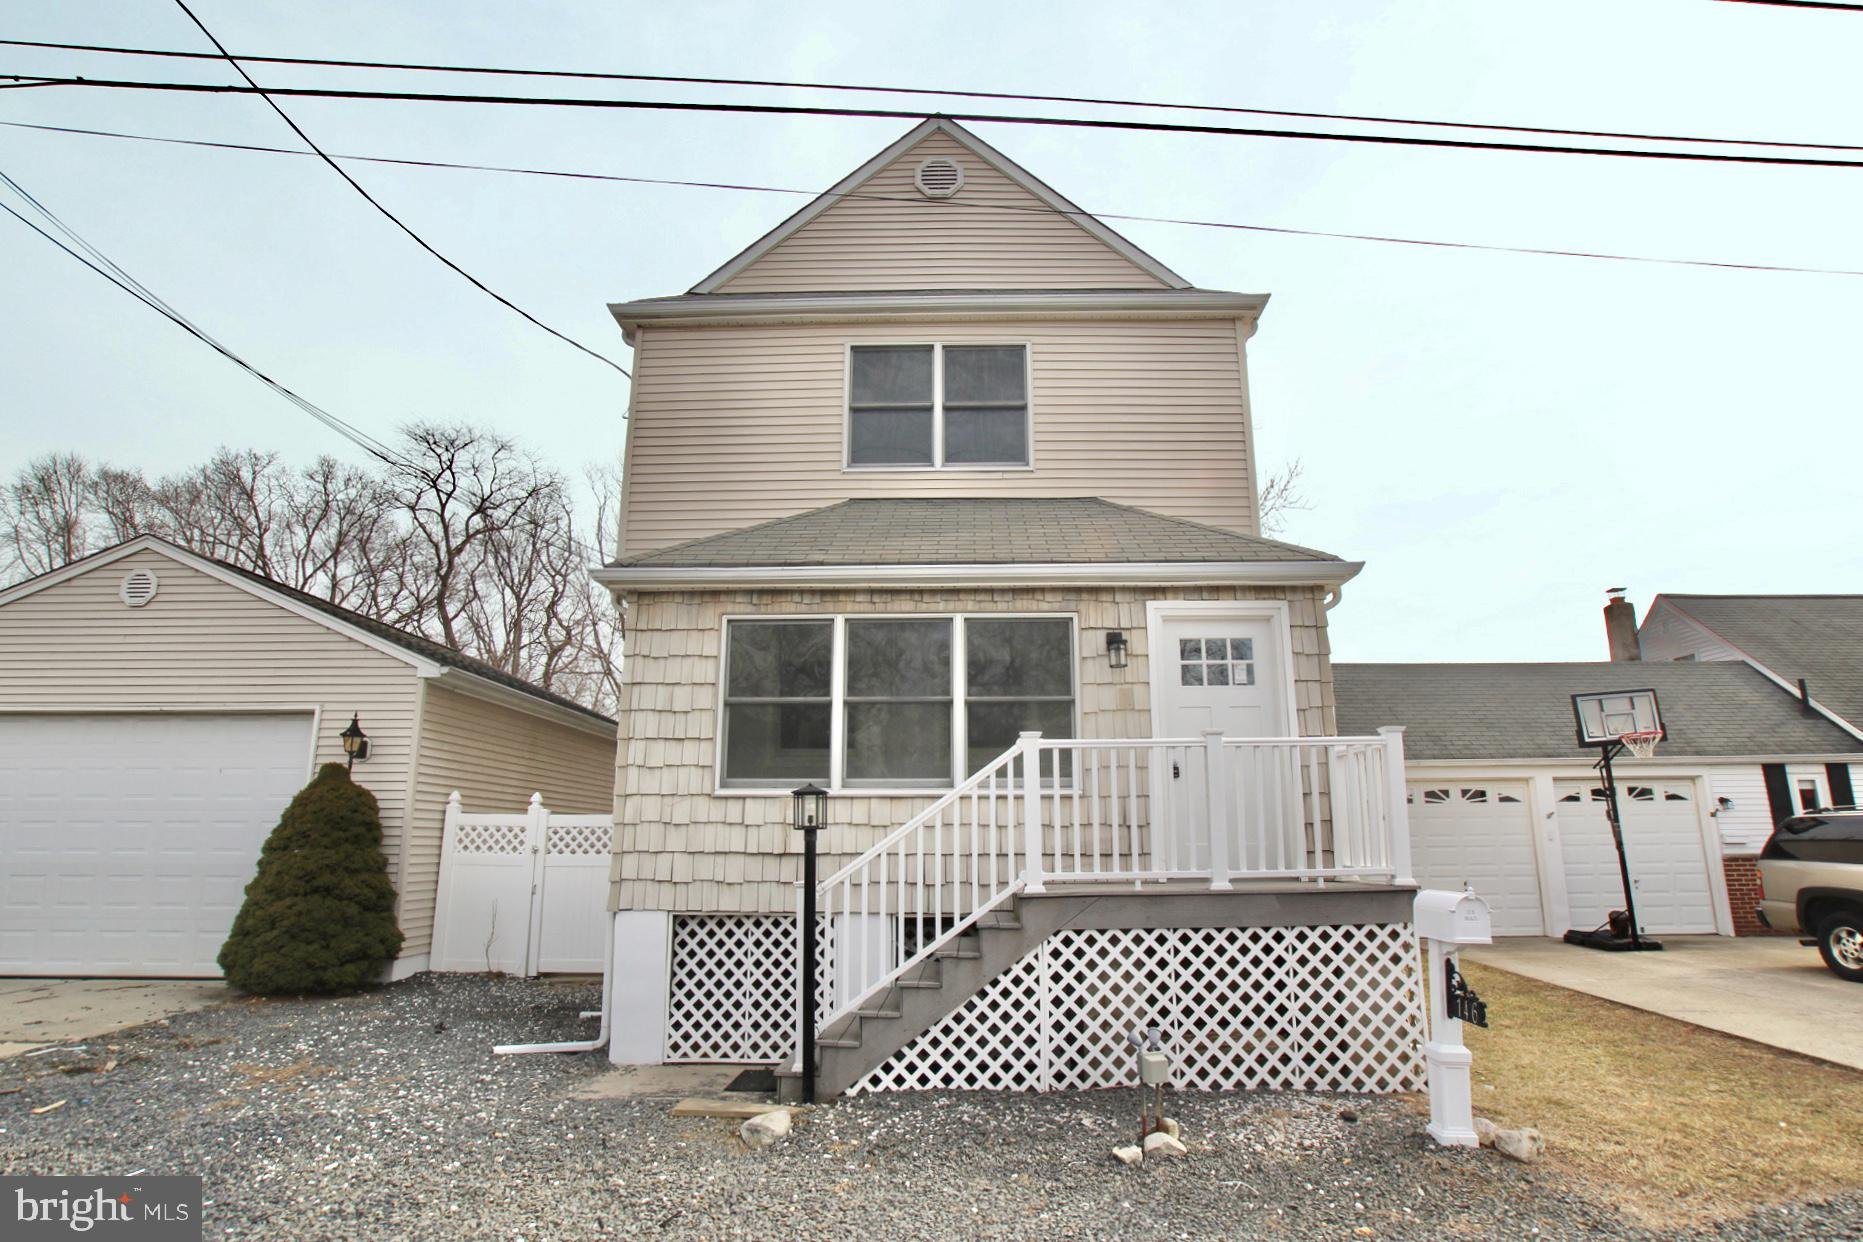 146 BROOKLYN AVENUE, SPOTSWOOD, NJ 08884